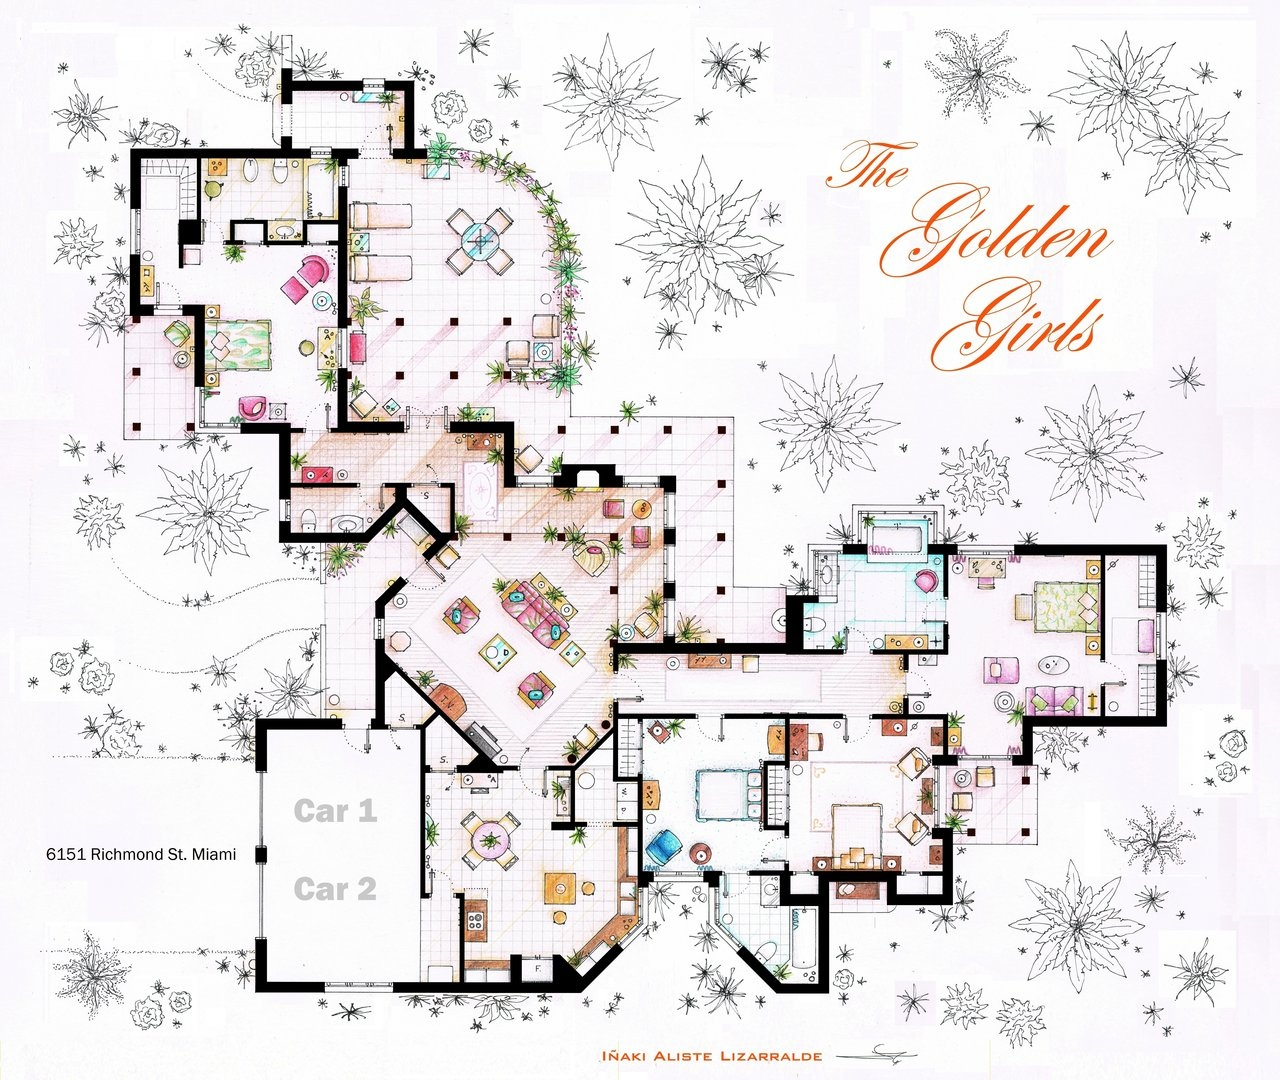 Floor plans of homes from famous TV showsThe Golden Girls House